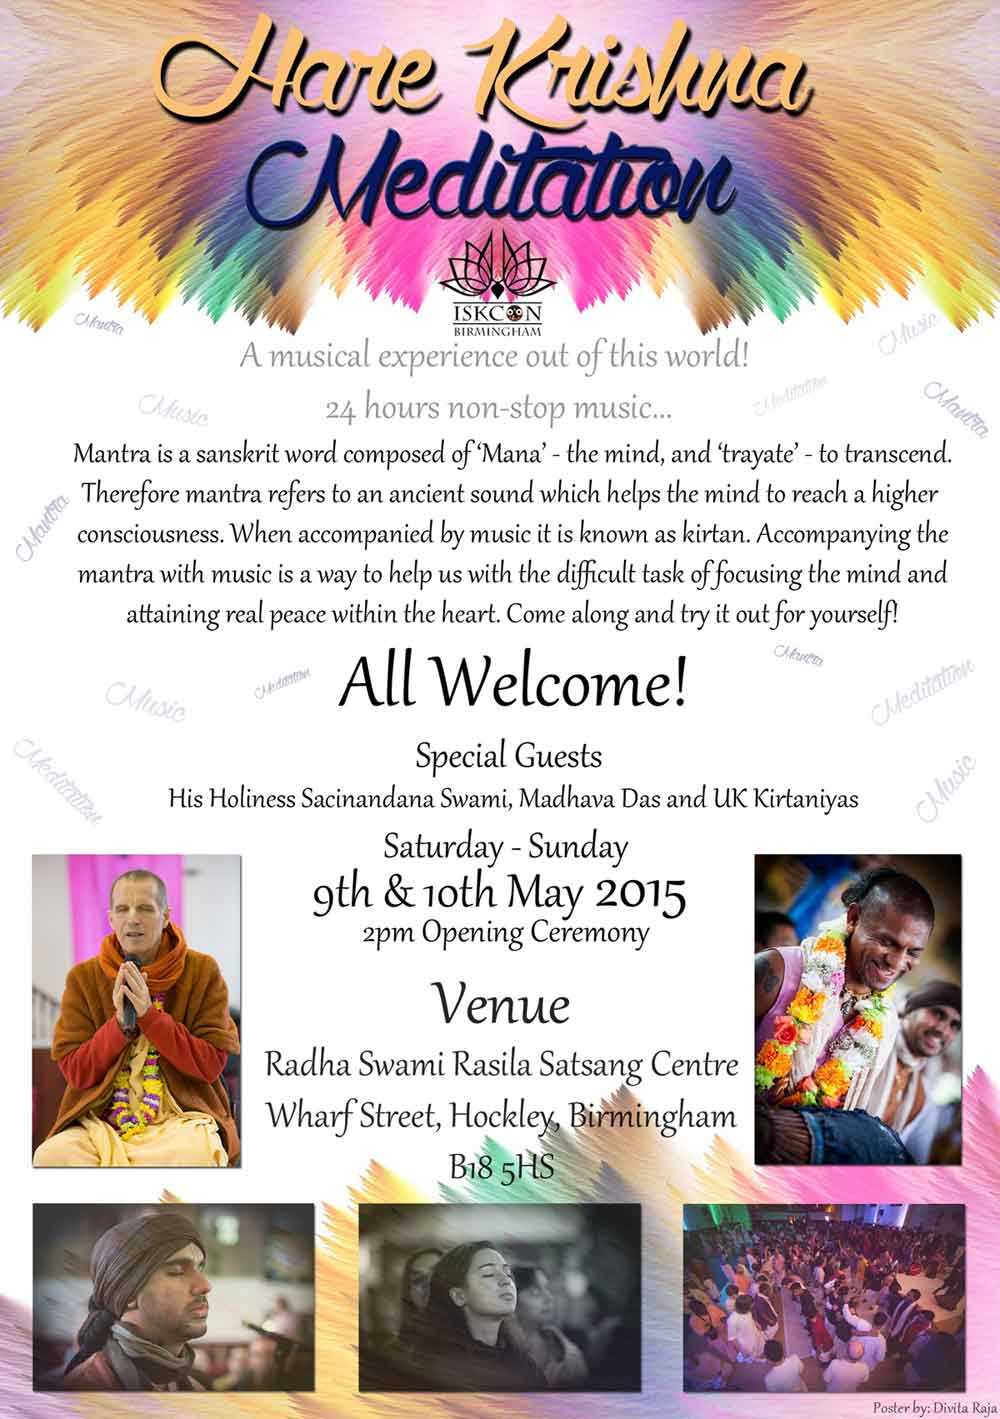 A Superb Spiritually enlightening event not to be missed